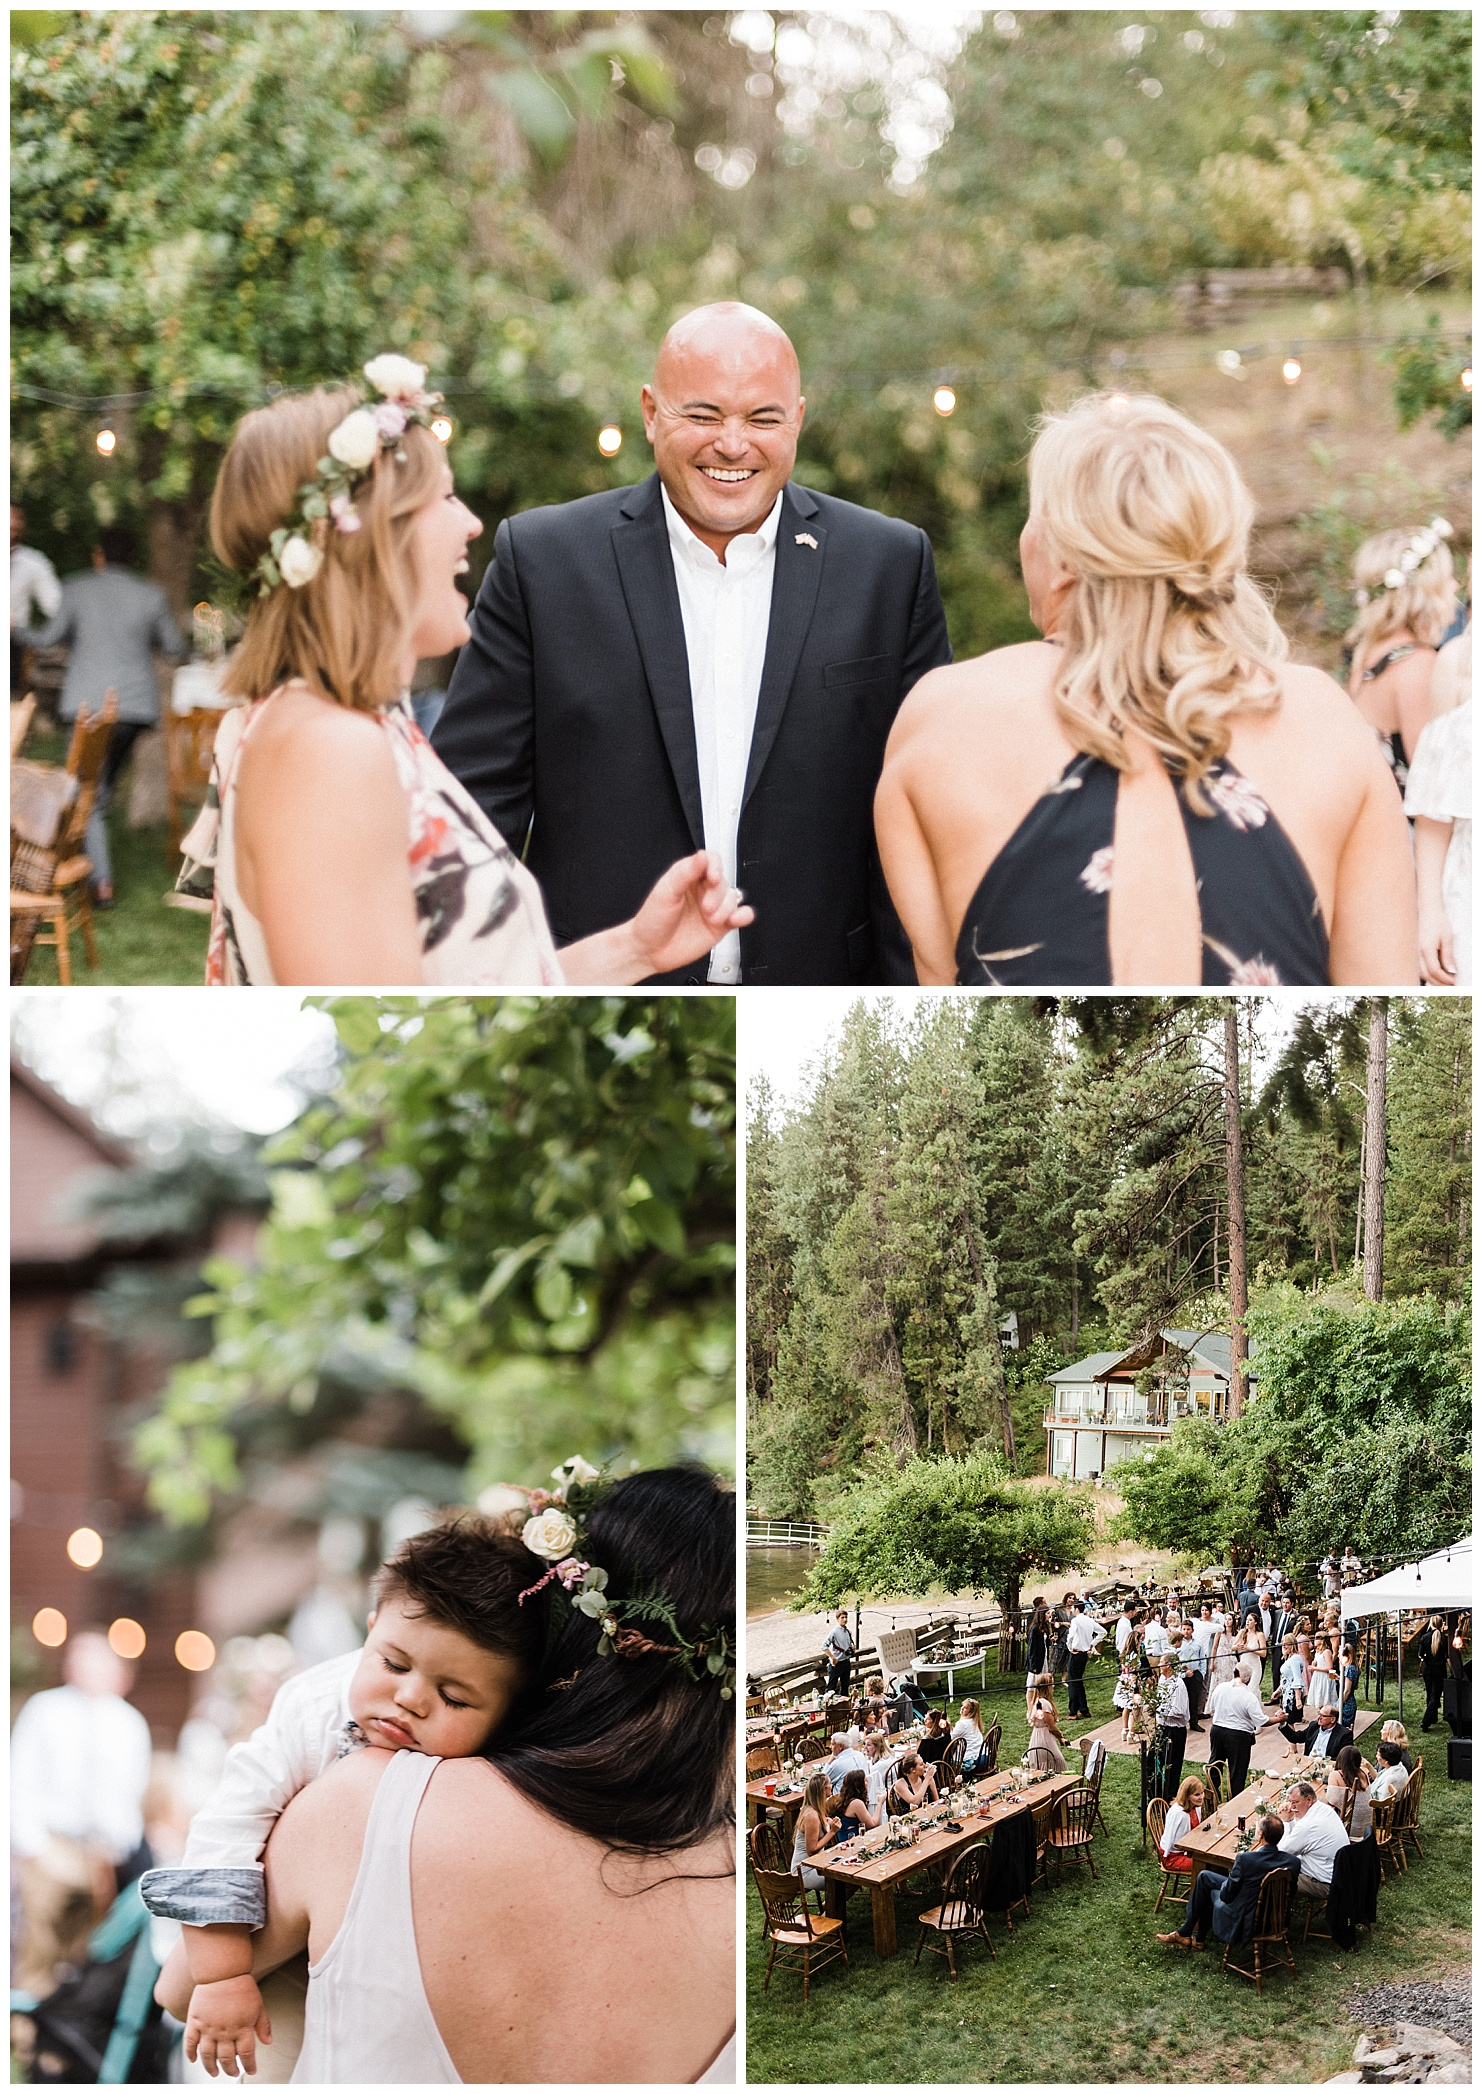 Lake Coeur d'Alene Wedding Reception Photos by Forthright Photo